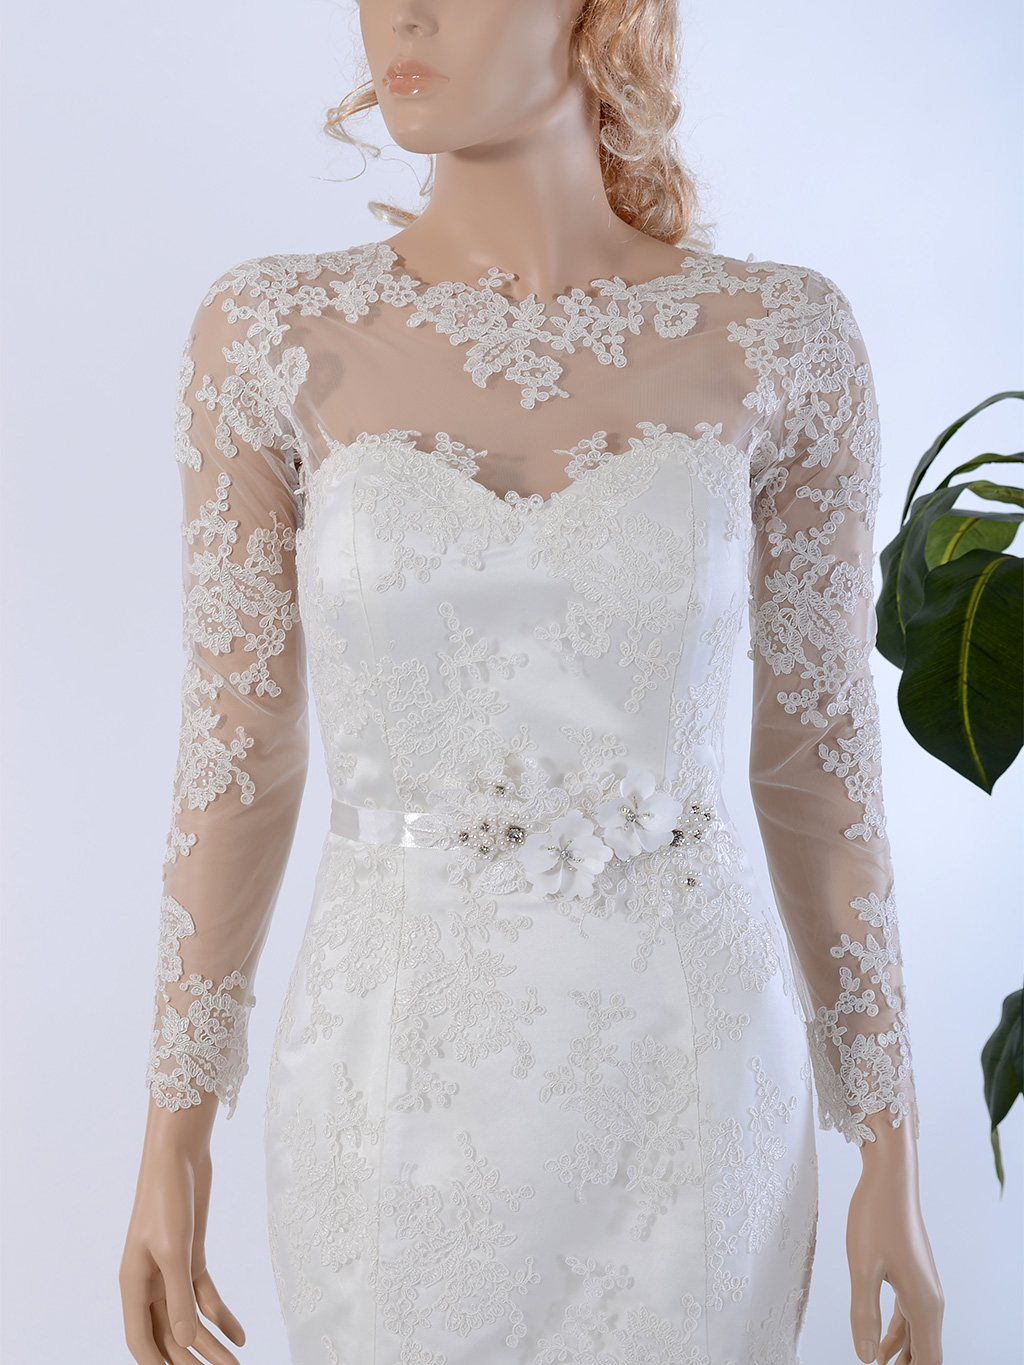 Long Sleeve Illusion Tulle Lace Wedding Jacket wedding dress topper WJ030